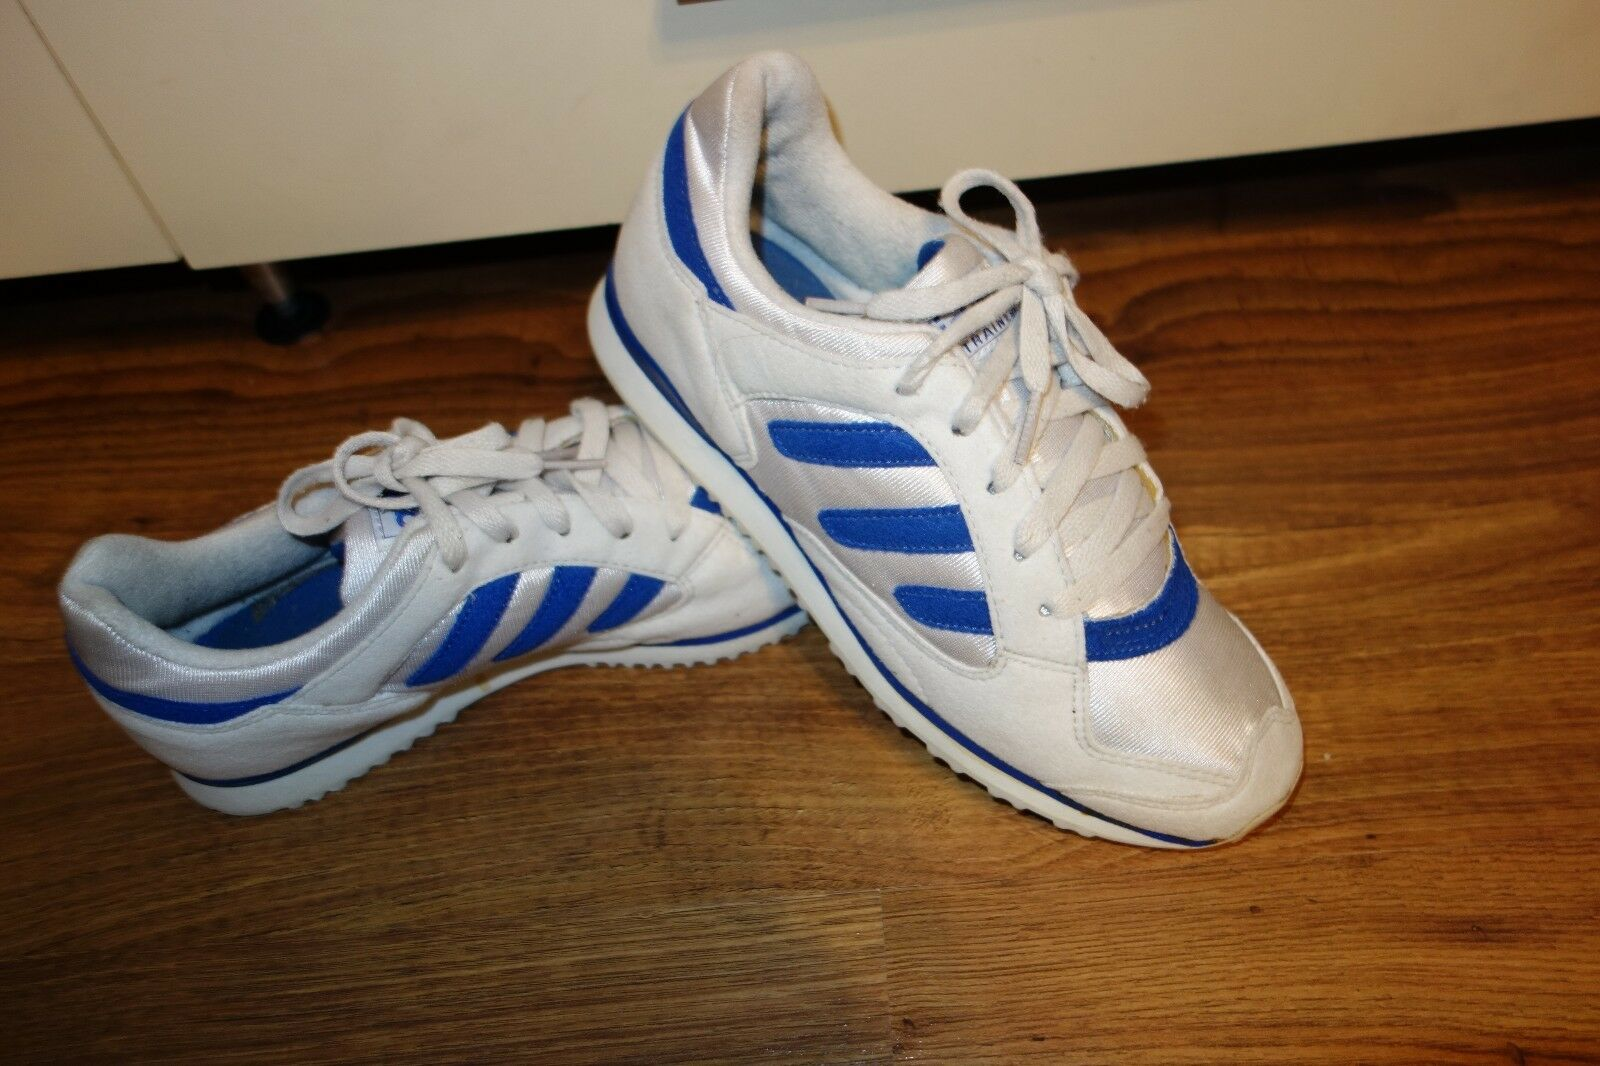 VINTAGE '94 ADIDAS TECH TRAINER 036888 VERY GOOD CONDITION